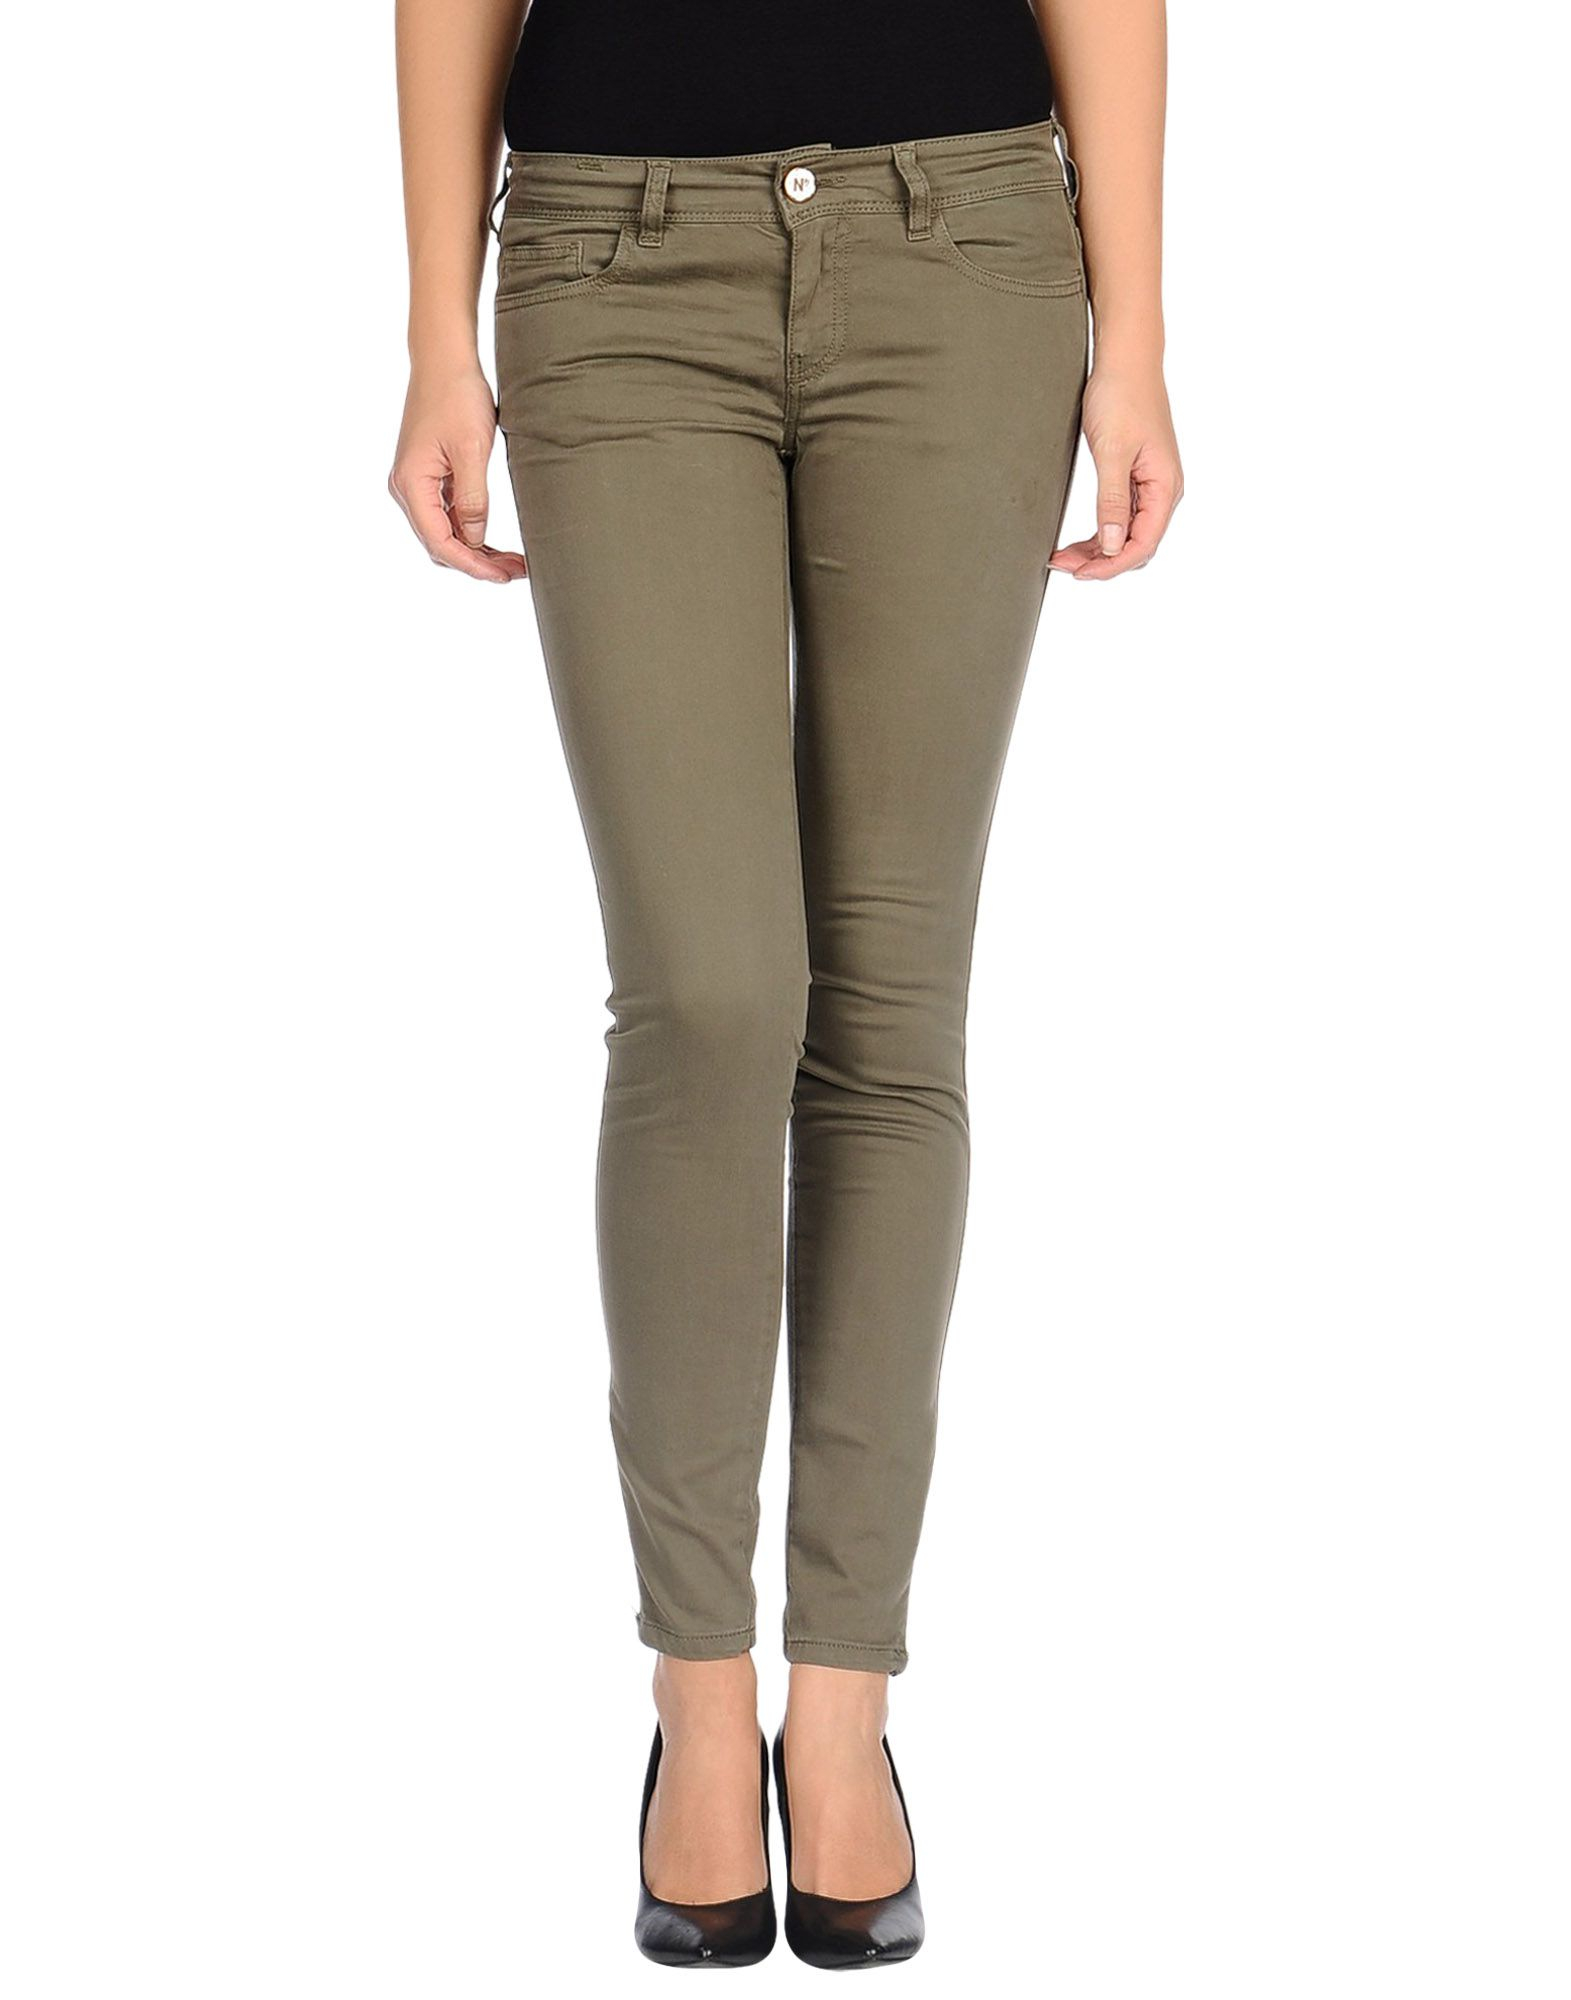 Notify Casual Trouser in Khaki (Military green) | Lyst